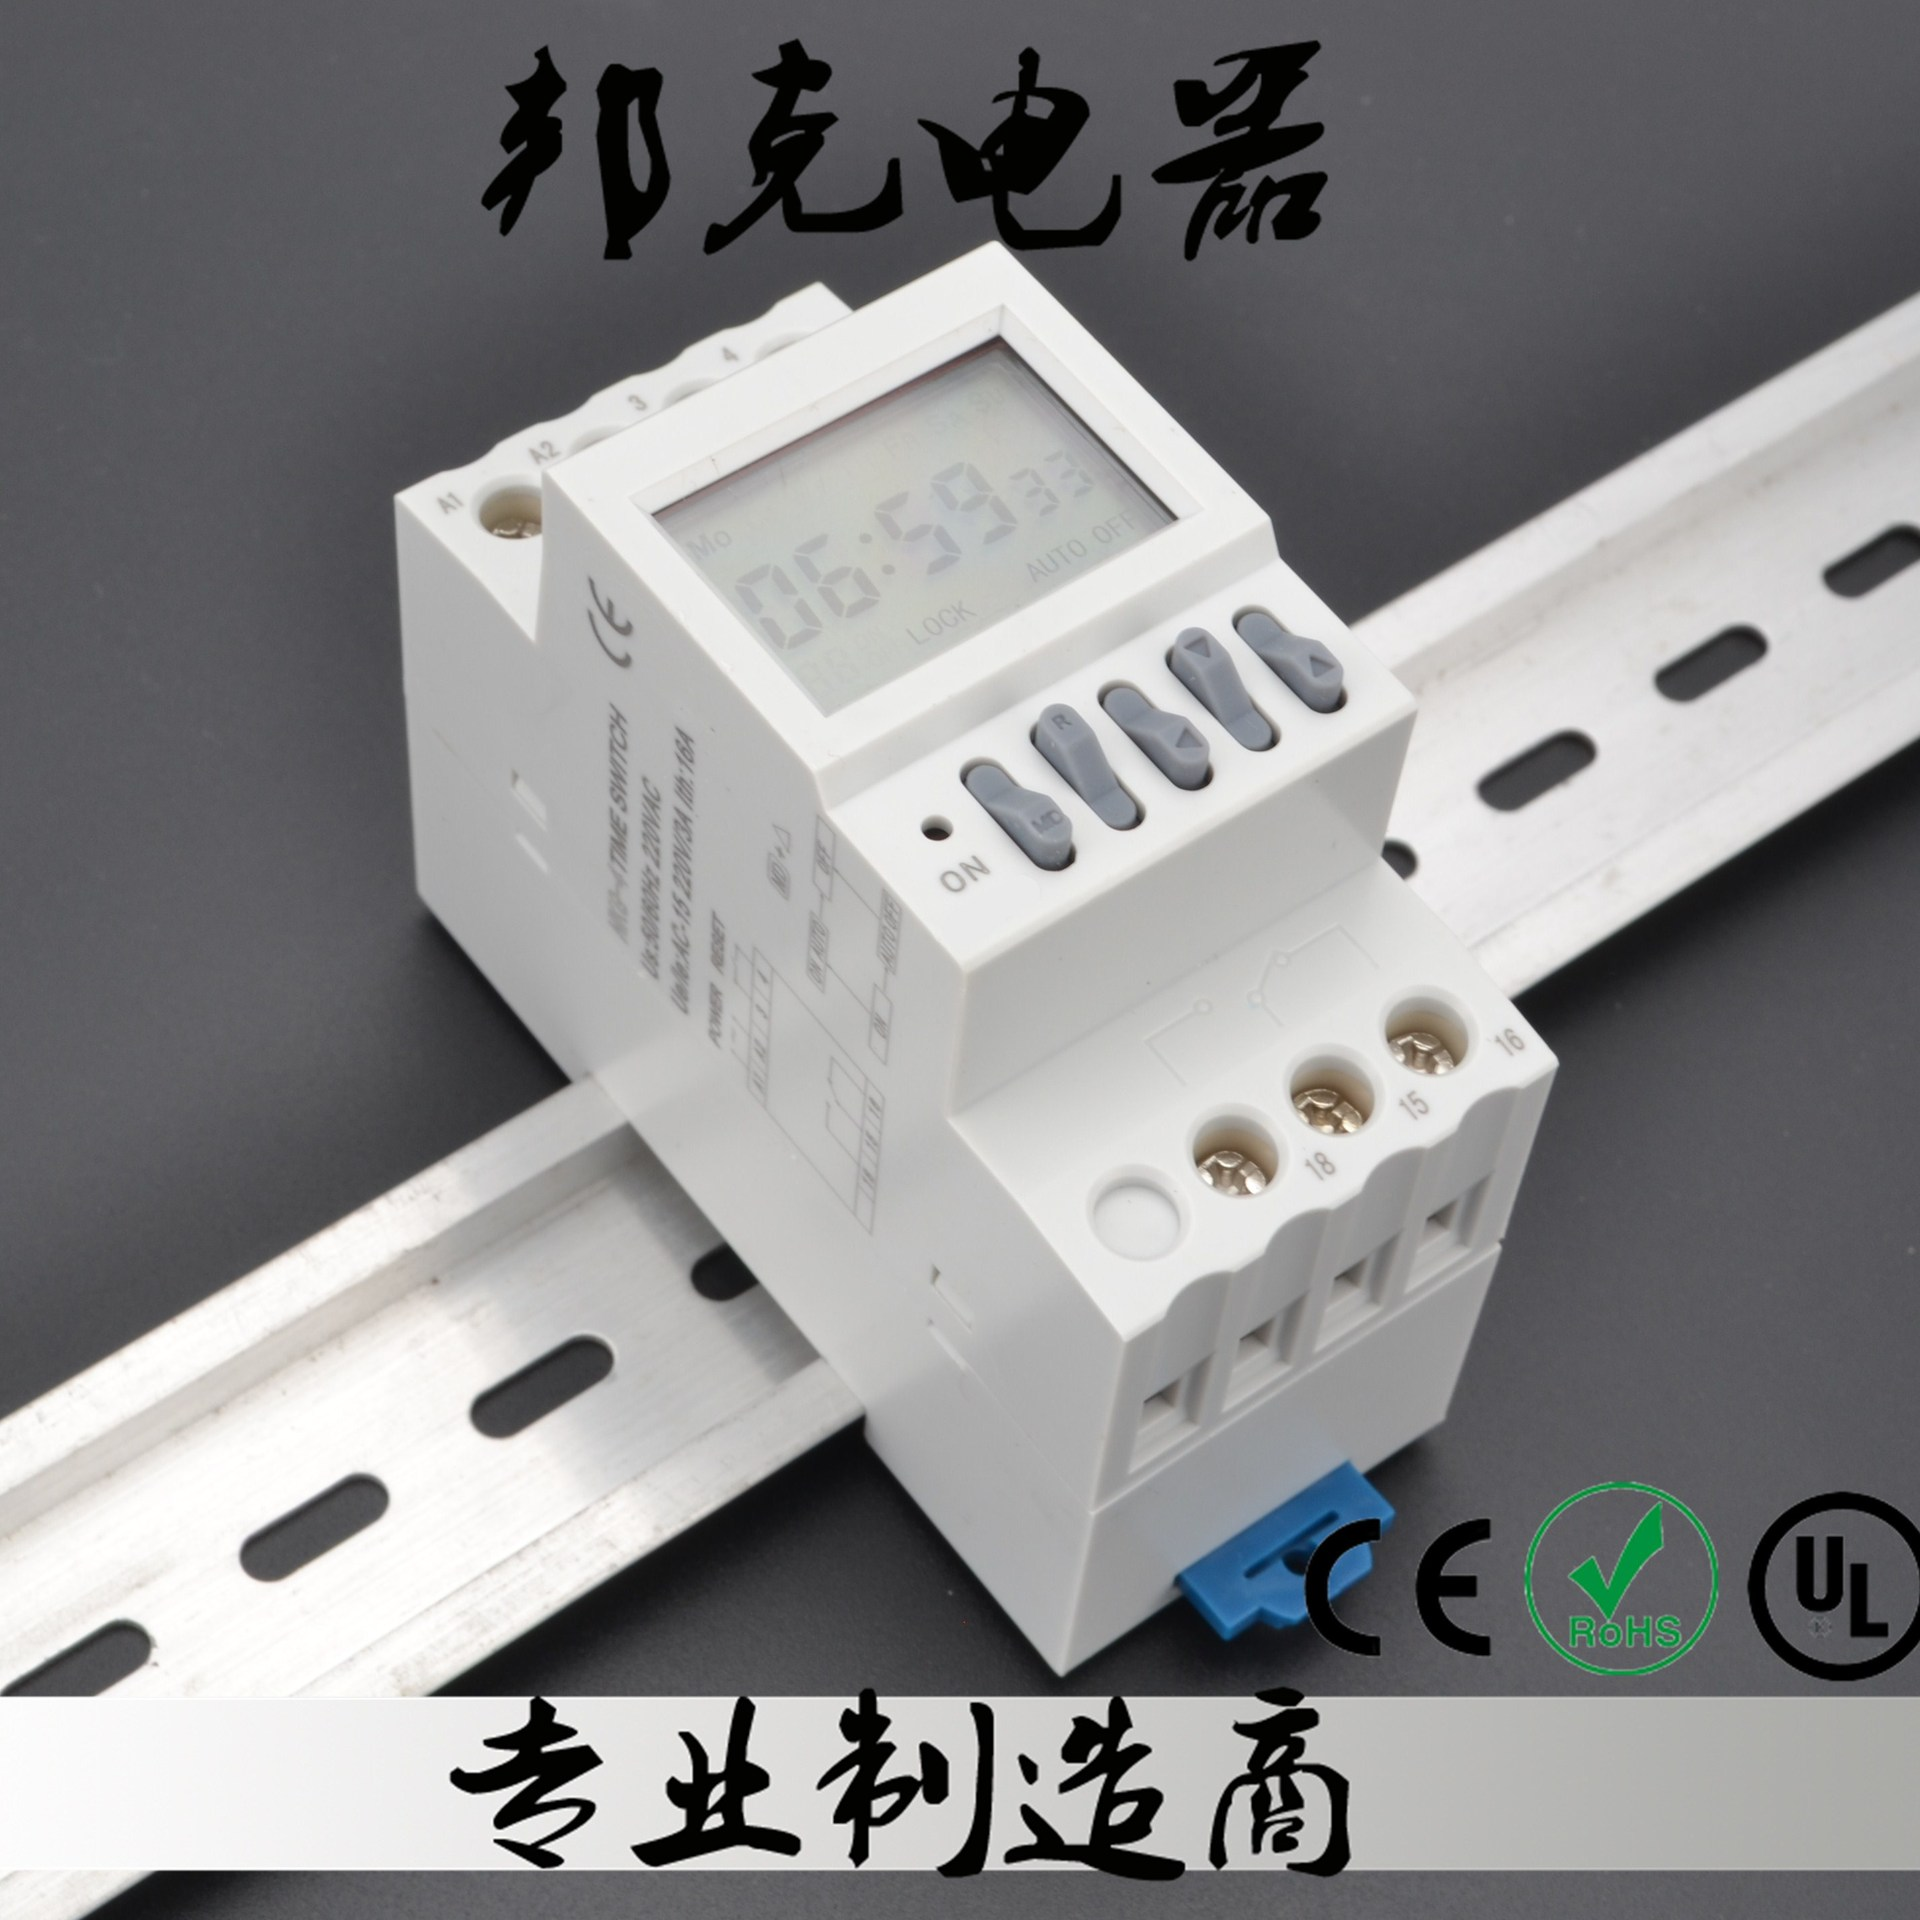 NKG-5 LCD infinite cycle timer Microcomputer Programmable Timer Din Rail Street Lamp Controller Digital Time Switch din Relay chint nkg3 nkg 3 lcd microcomputer astro time switch sunrise sunset based on latitude din rail digital programmable timer relay